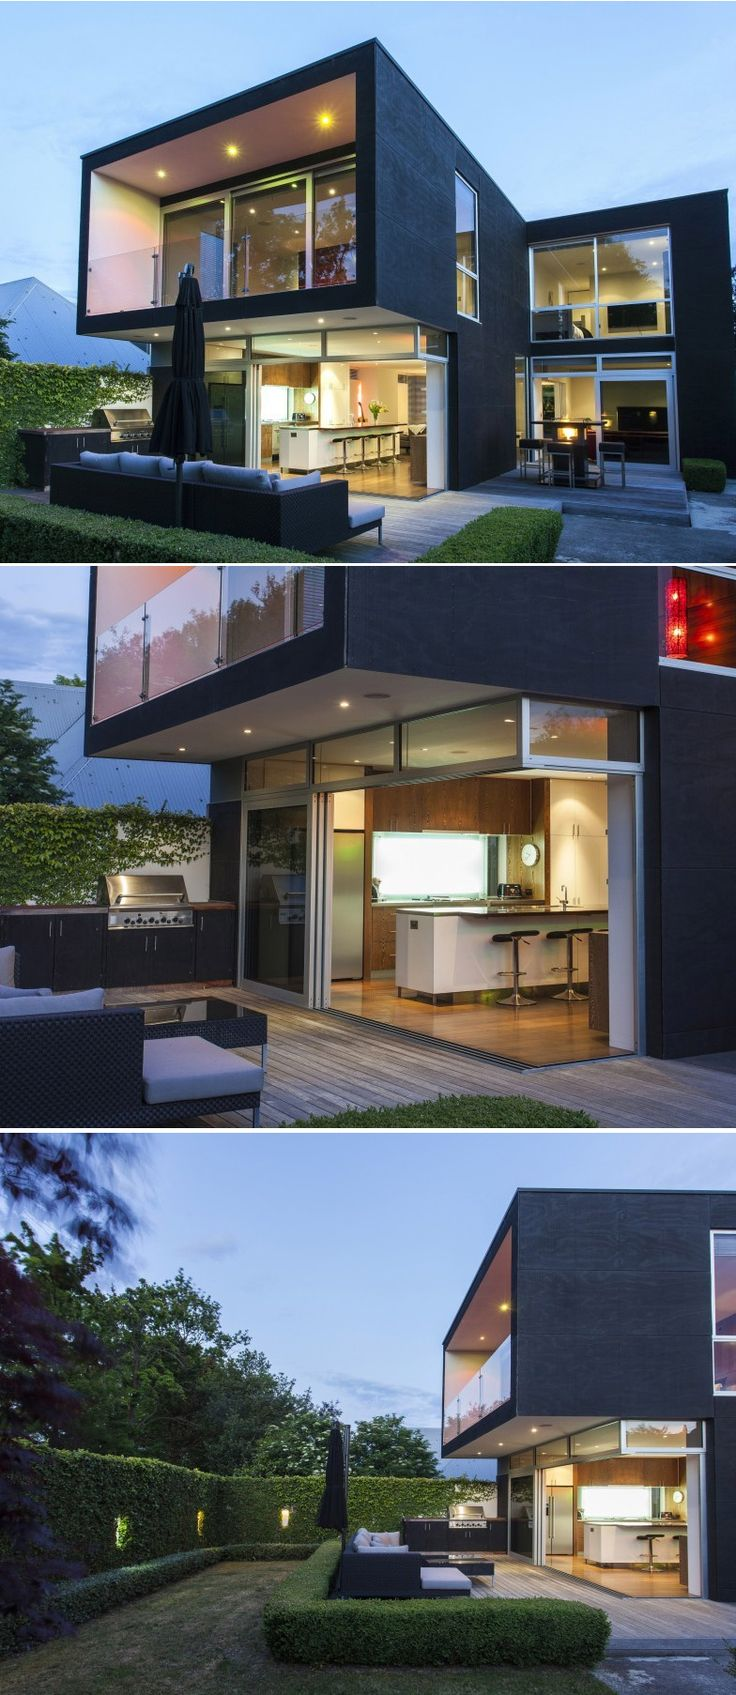 Think outside of the box but live within it #westernliving #modernarchitecture